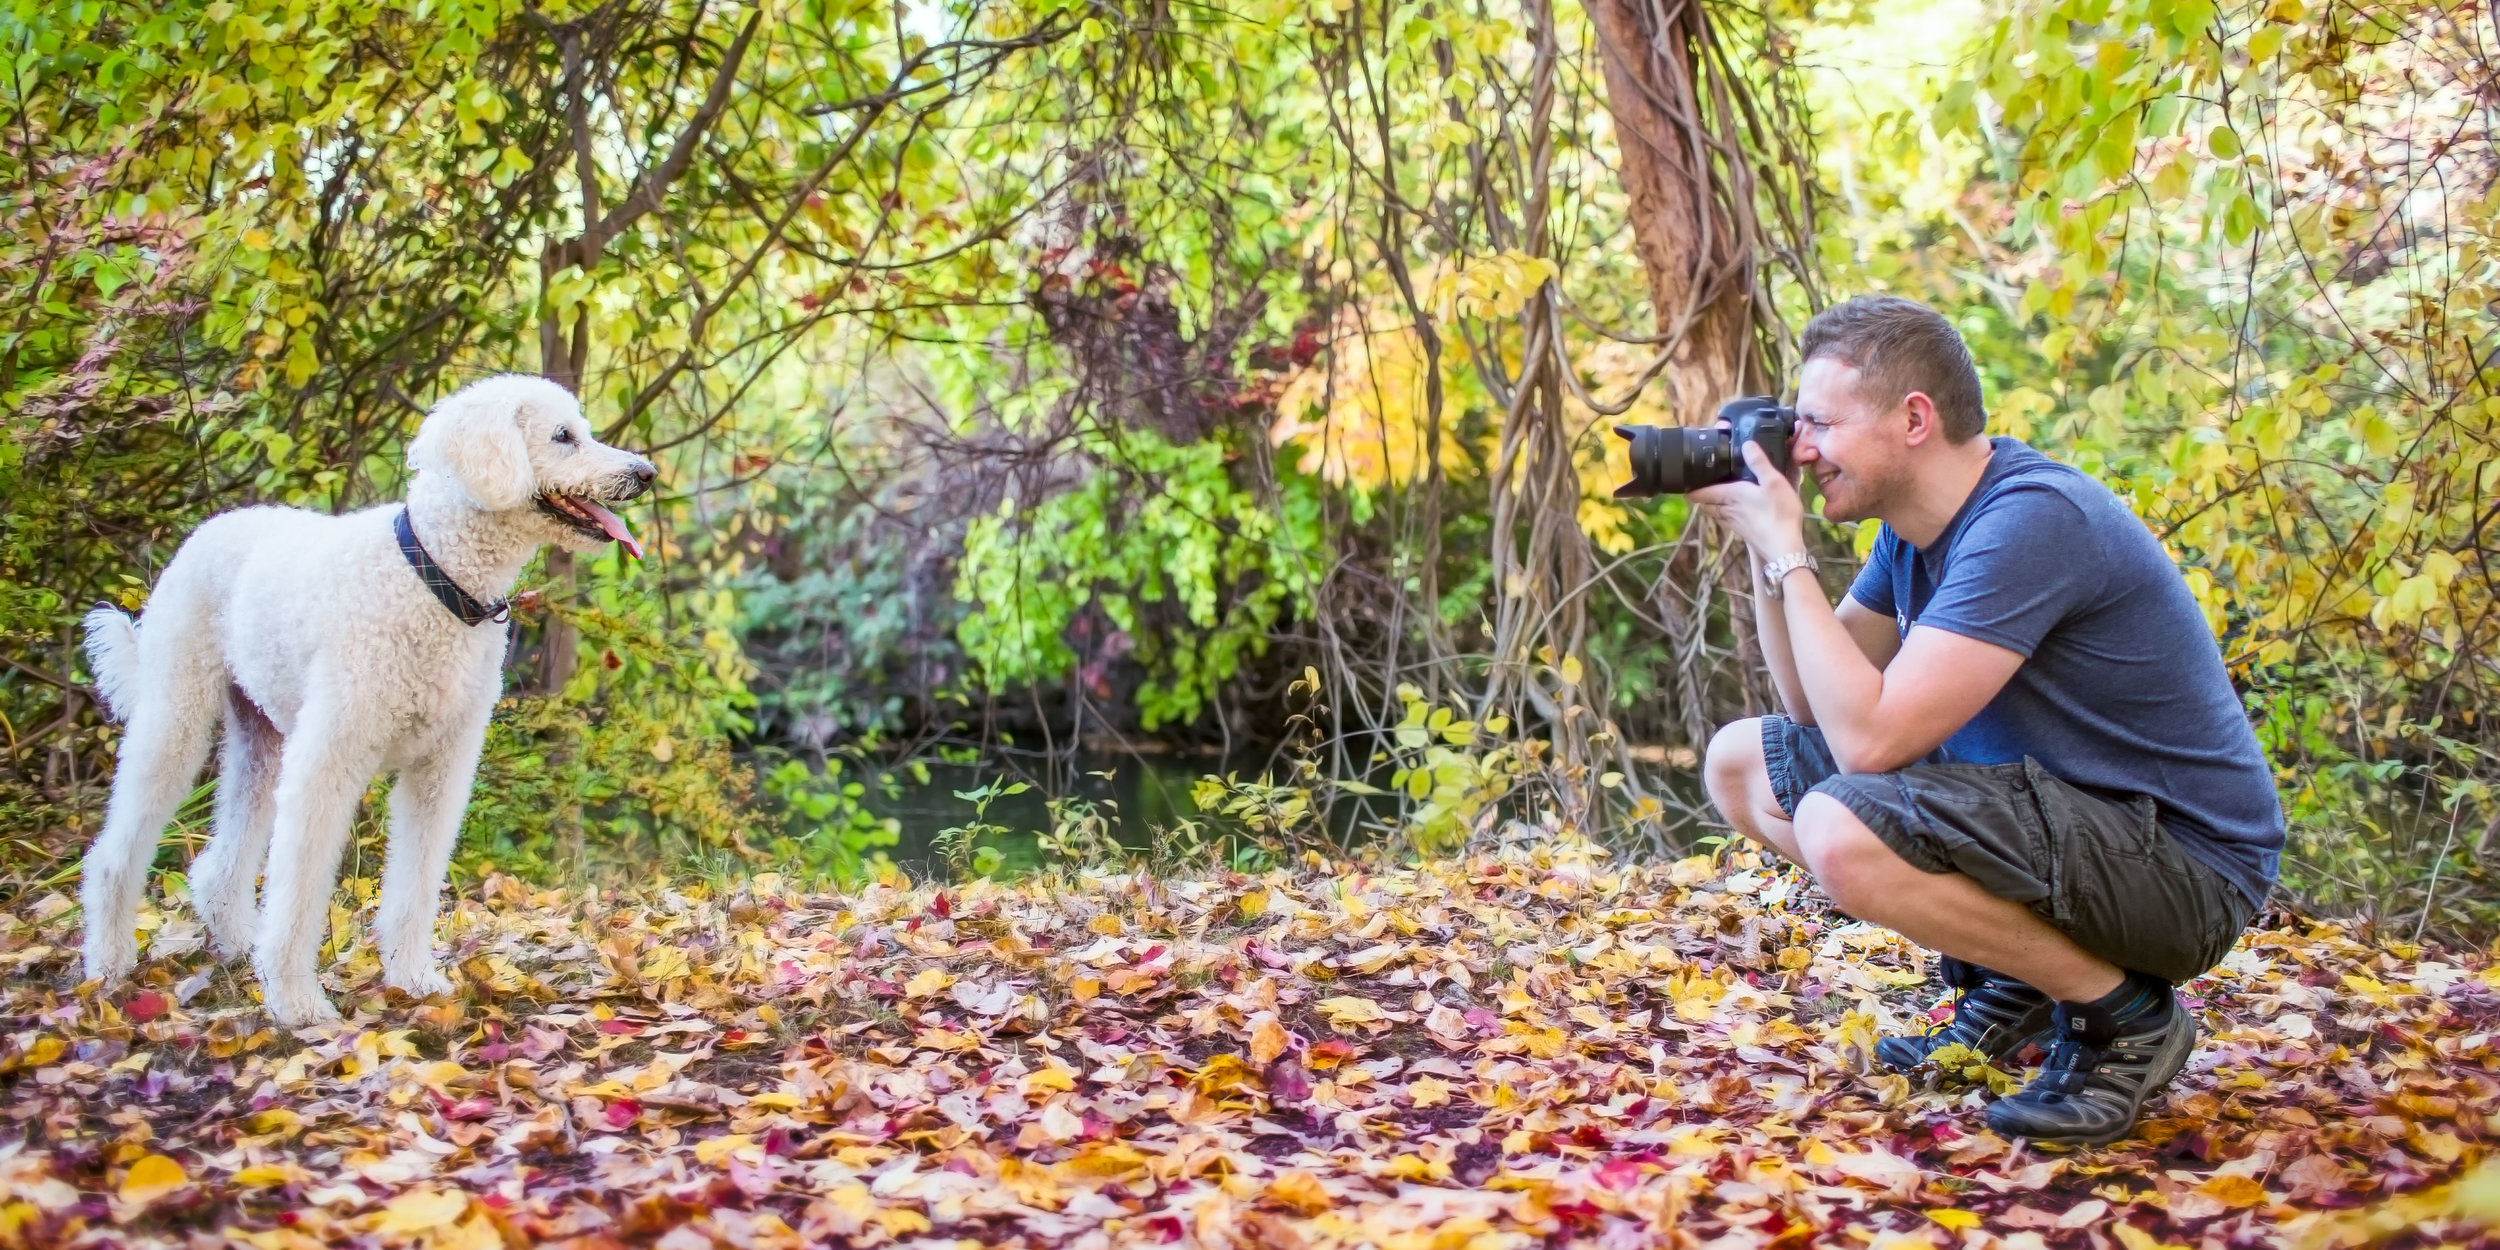 Photograph of a poodle being photographed by professional dog photographer in autumn leaves